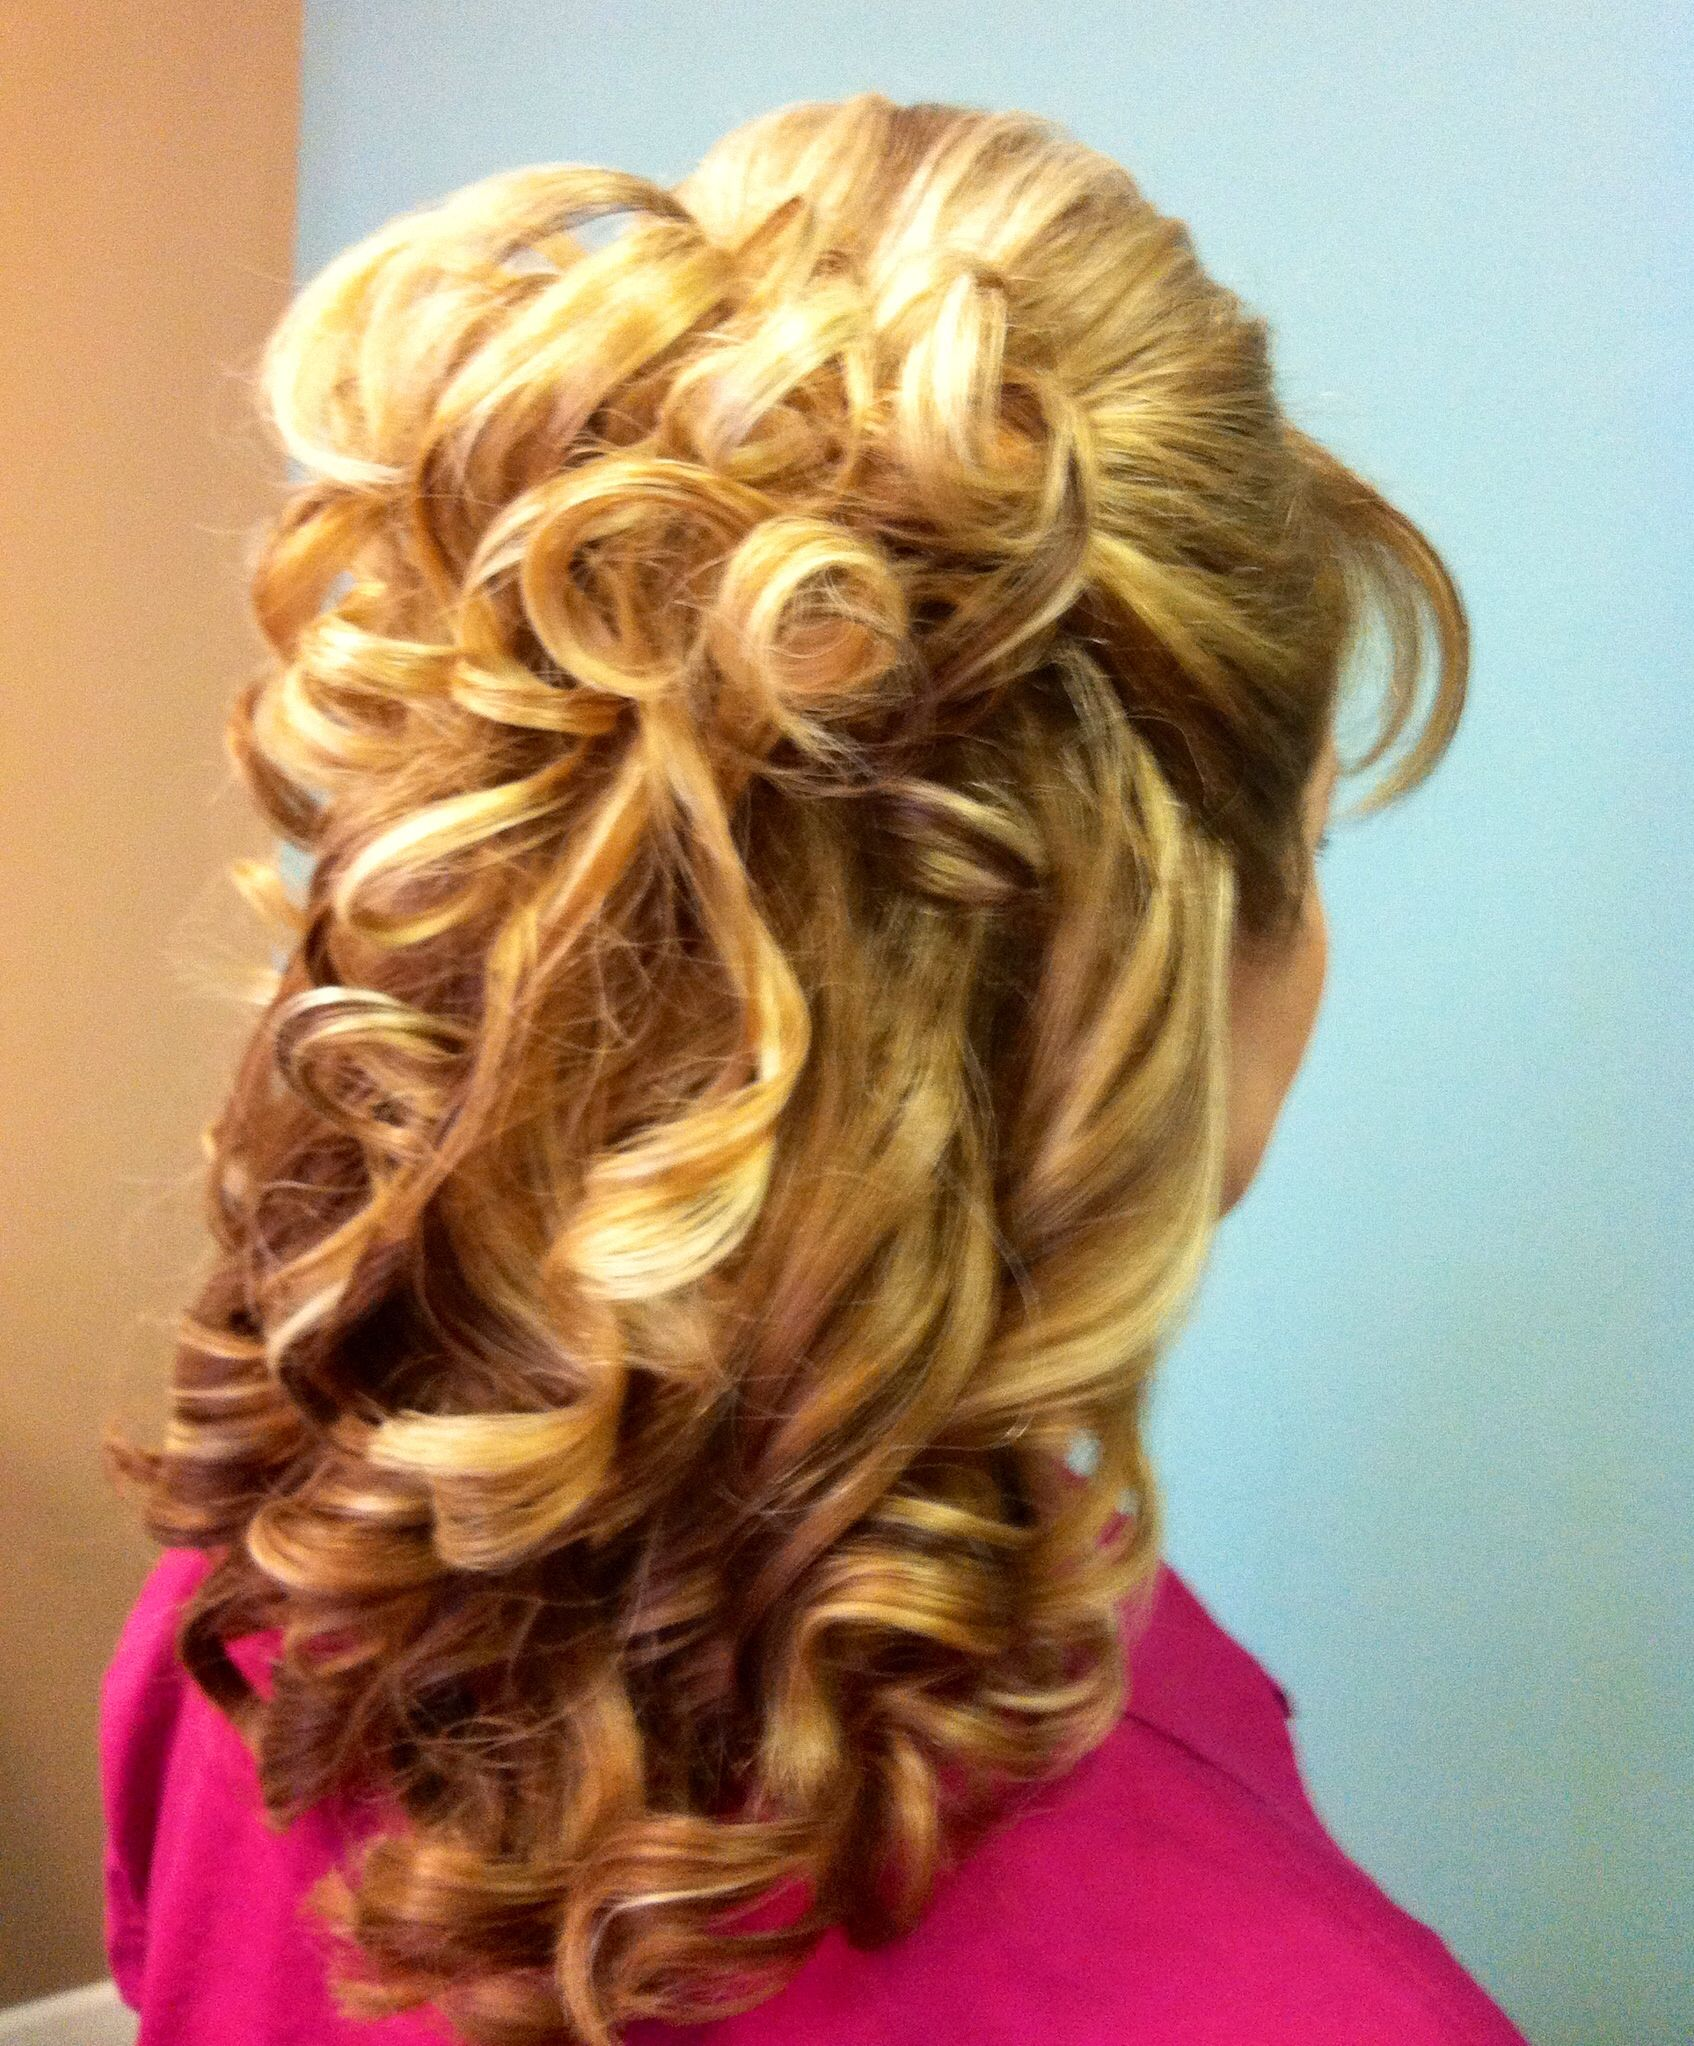 Half up half down hairstyle Hair by Casey Pinterest